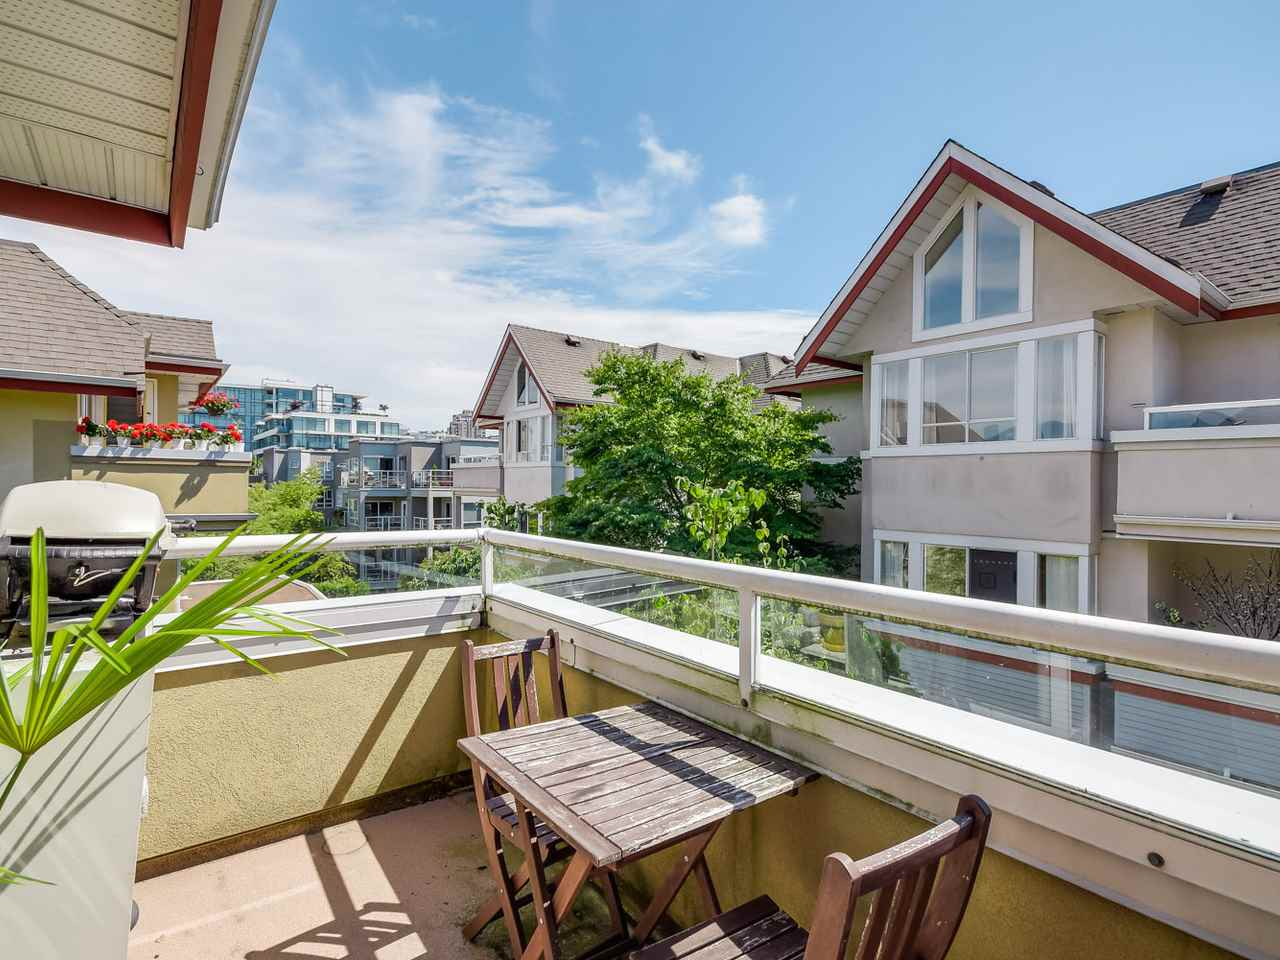 Photo 17: 307 1876 W 6TH AVENUE in Vancouver: Kitsilano Condo for sale (Vancouver West)  : MLS(r) # R2143706